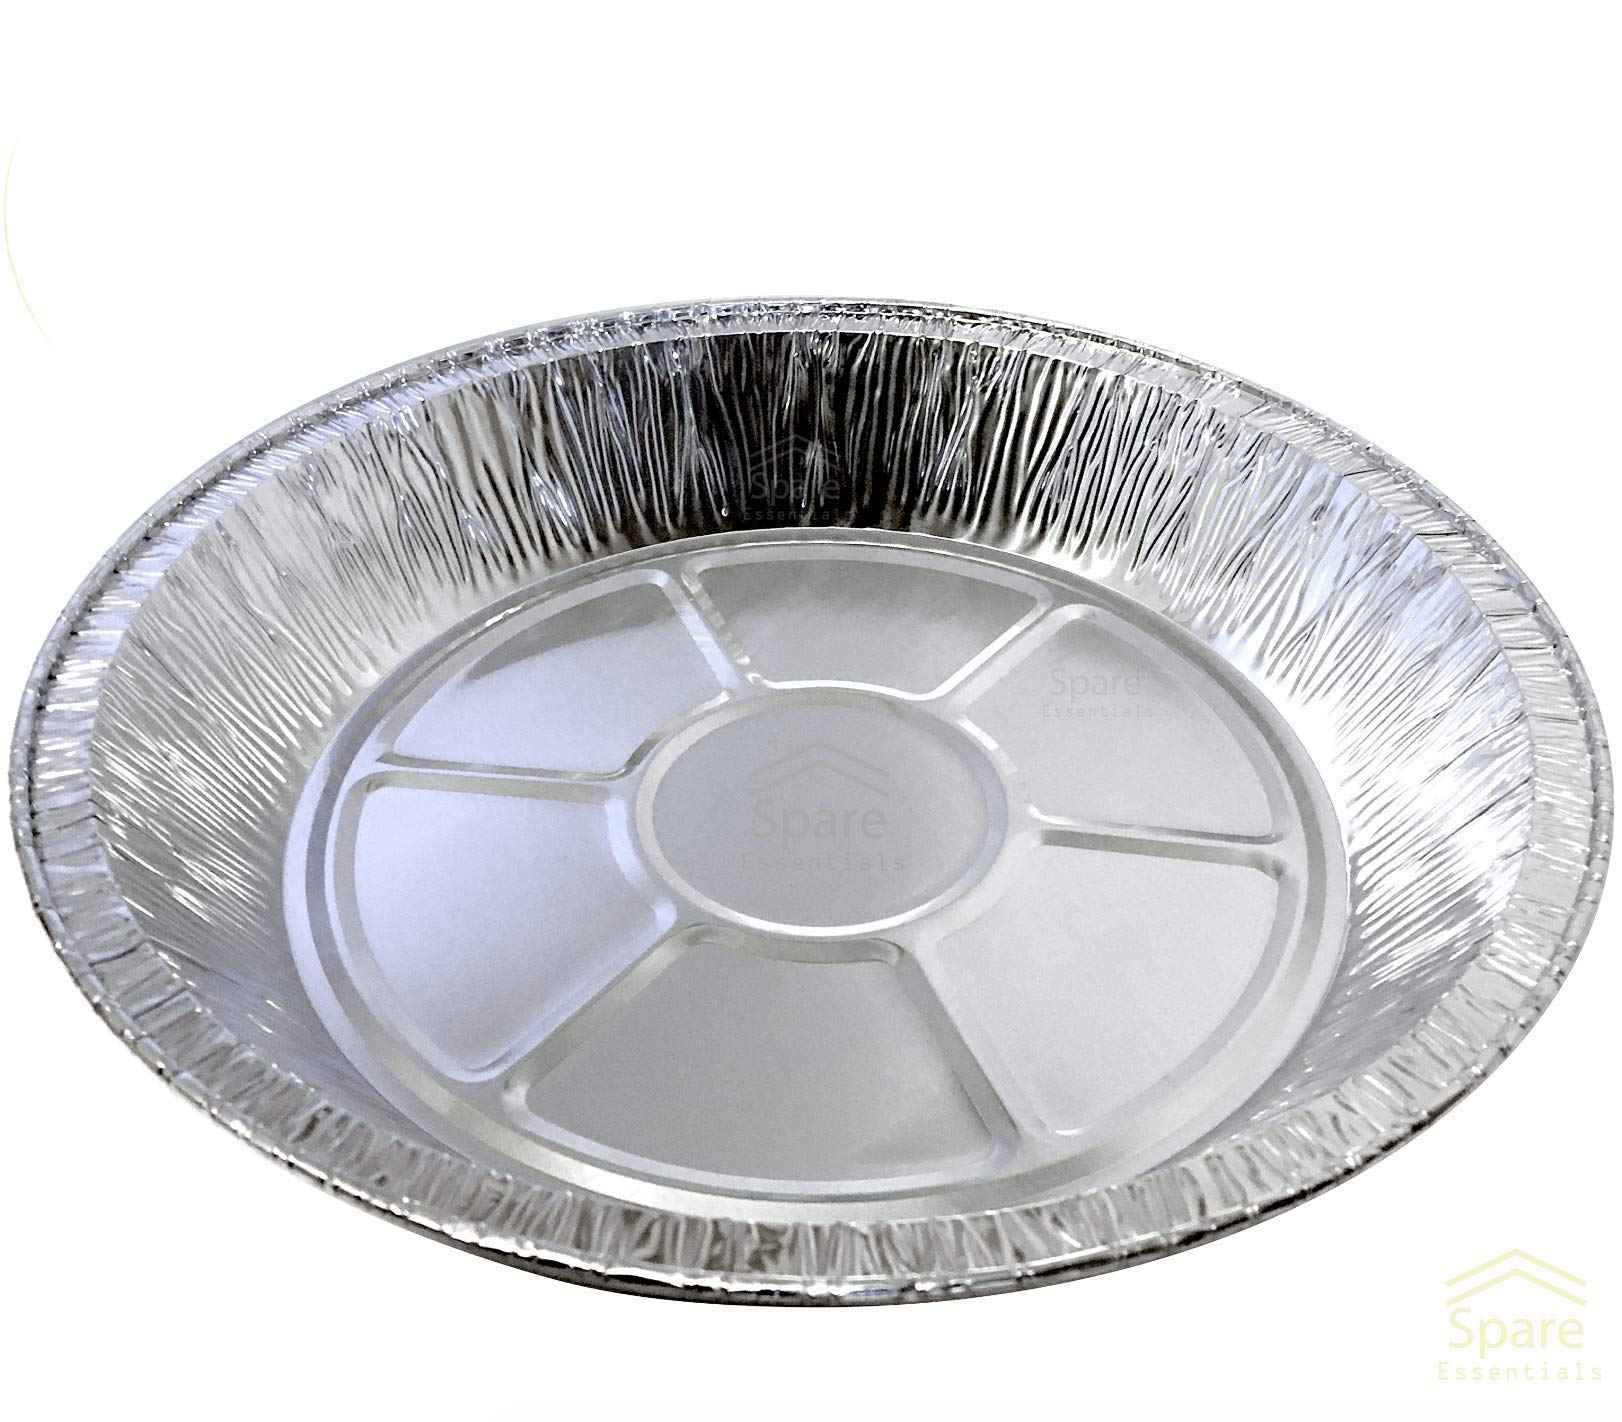 25 PACK - Prime Pie Pans. Ideal for Tasteful Cakes and Pies. Sturdy Aluminum Foil Pans. Disposable Tin Plates for Tart/Pie – SIZE 9''